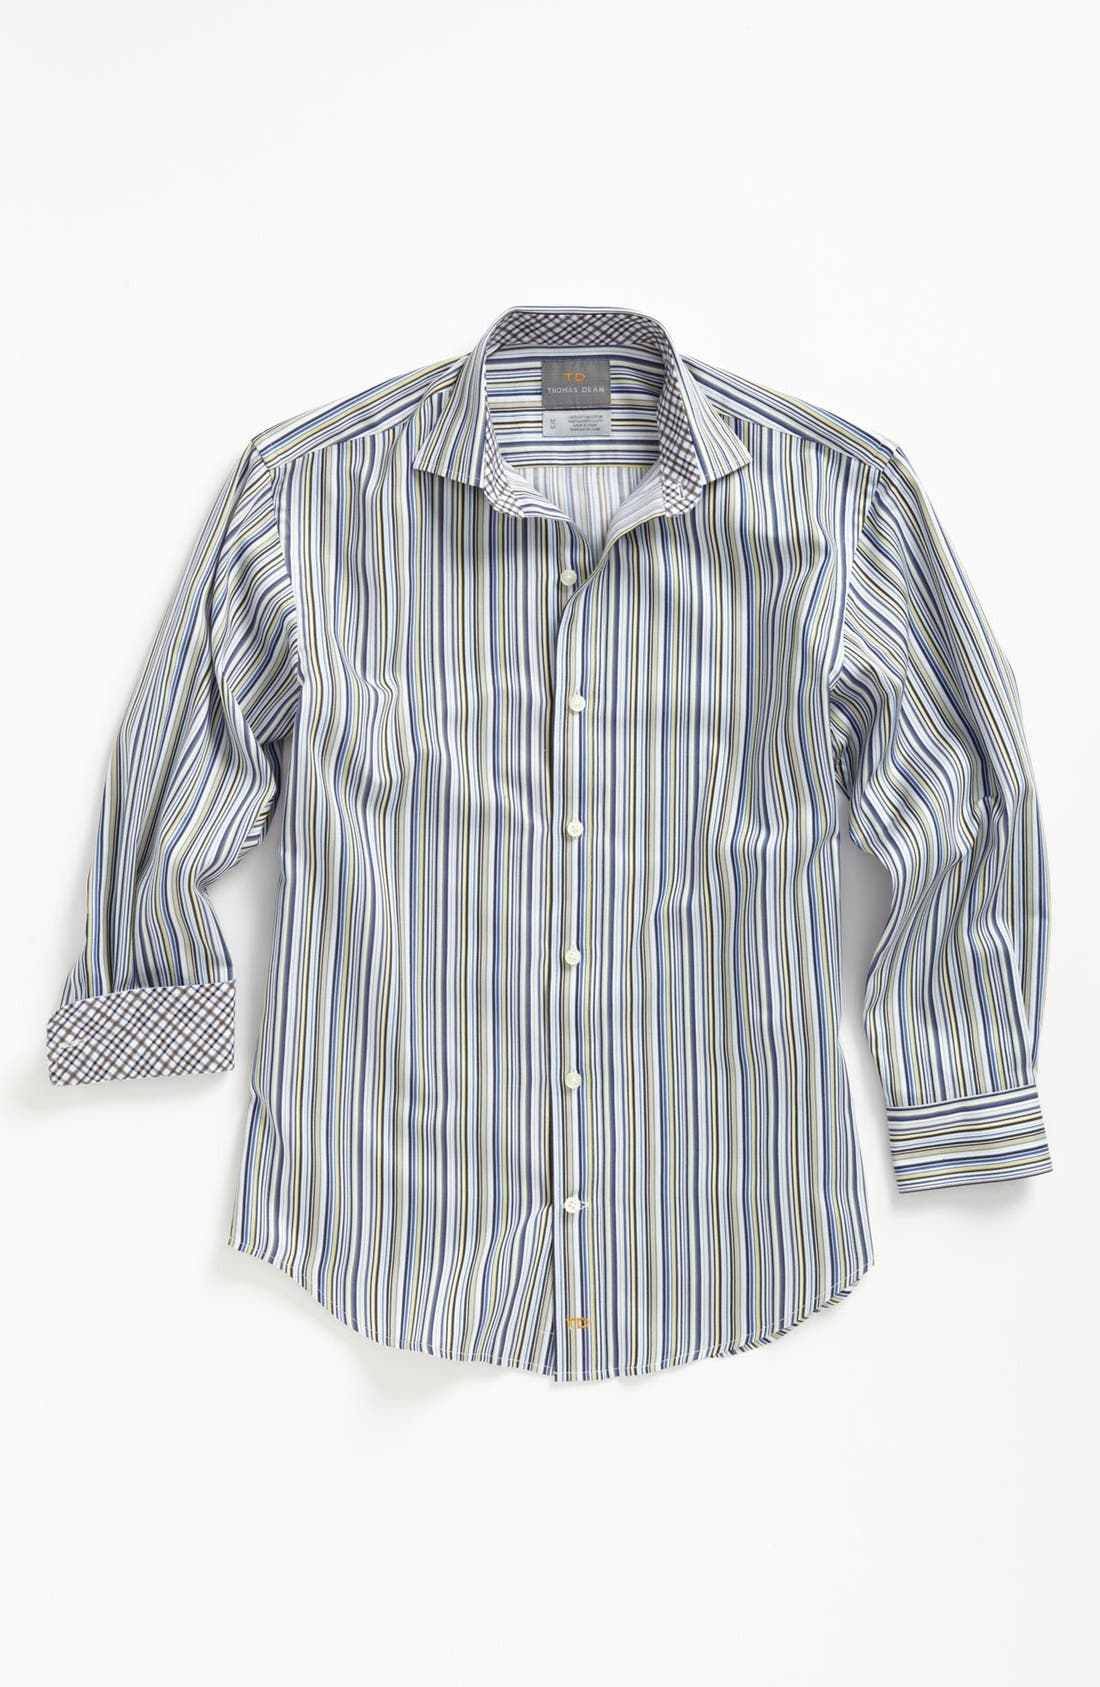 Alternate Image 1 Selected - Thomas Dean Stripe Dress Shirt (Little Boys)